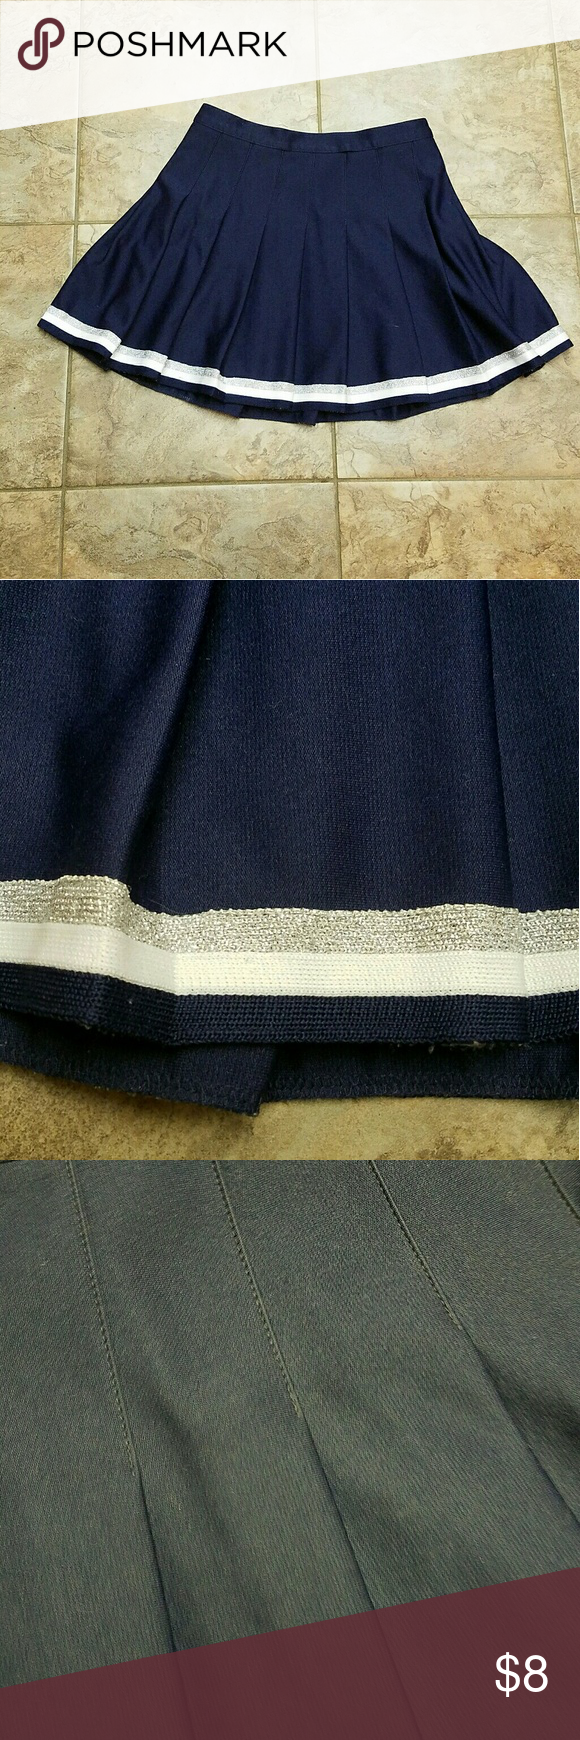 "Varsity Gal Skirt Super cute cheerleader skirt! Navy Blue with silver and white glitter trim. There's no size listed but it's definitely a small up to medium. The waist measures 14"" flat so probably around a size 28"" waist Urban Outfitters Skirts Mini"